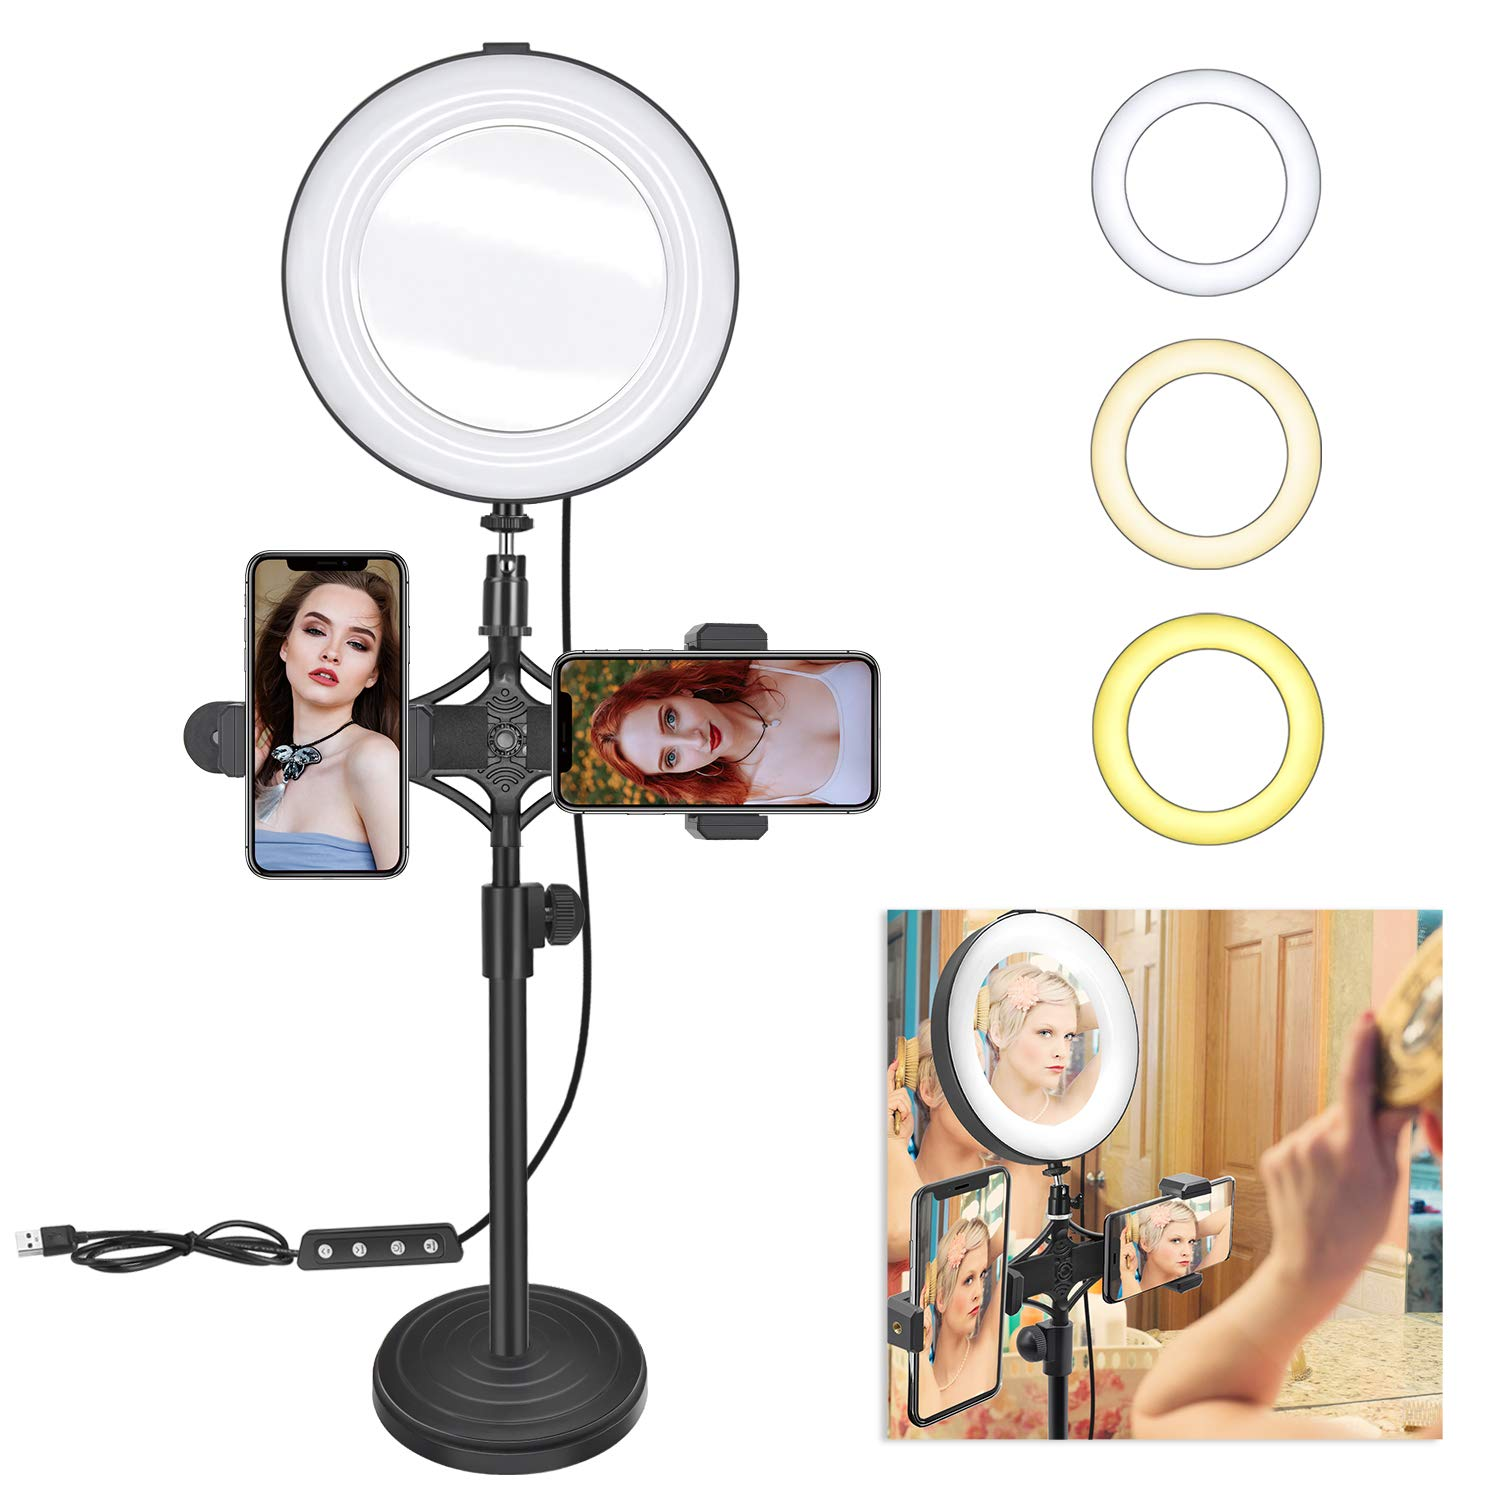 8'' Ring Light Mirror for Selfie/YouTube Video and Live Makeup/Photography, MDrebel Dimmable LED Ring Light with Stand and Phone Holder, Shooting with 3 Light Modes & 10 Brightness Level by MDrebel